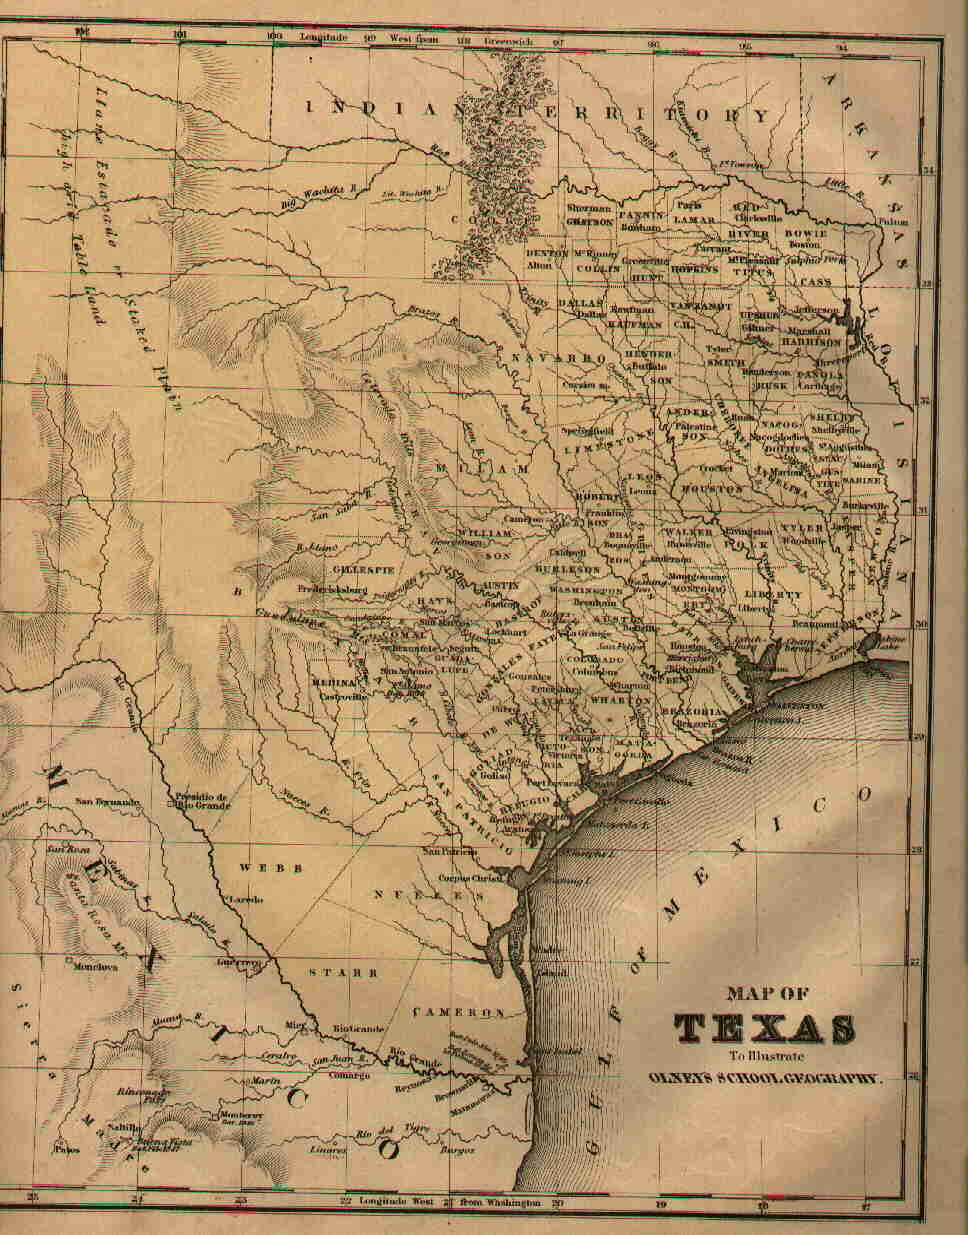 Texas Maps. Texas Digital Map Library. Table of Contents. United ...